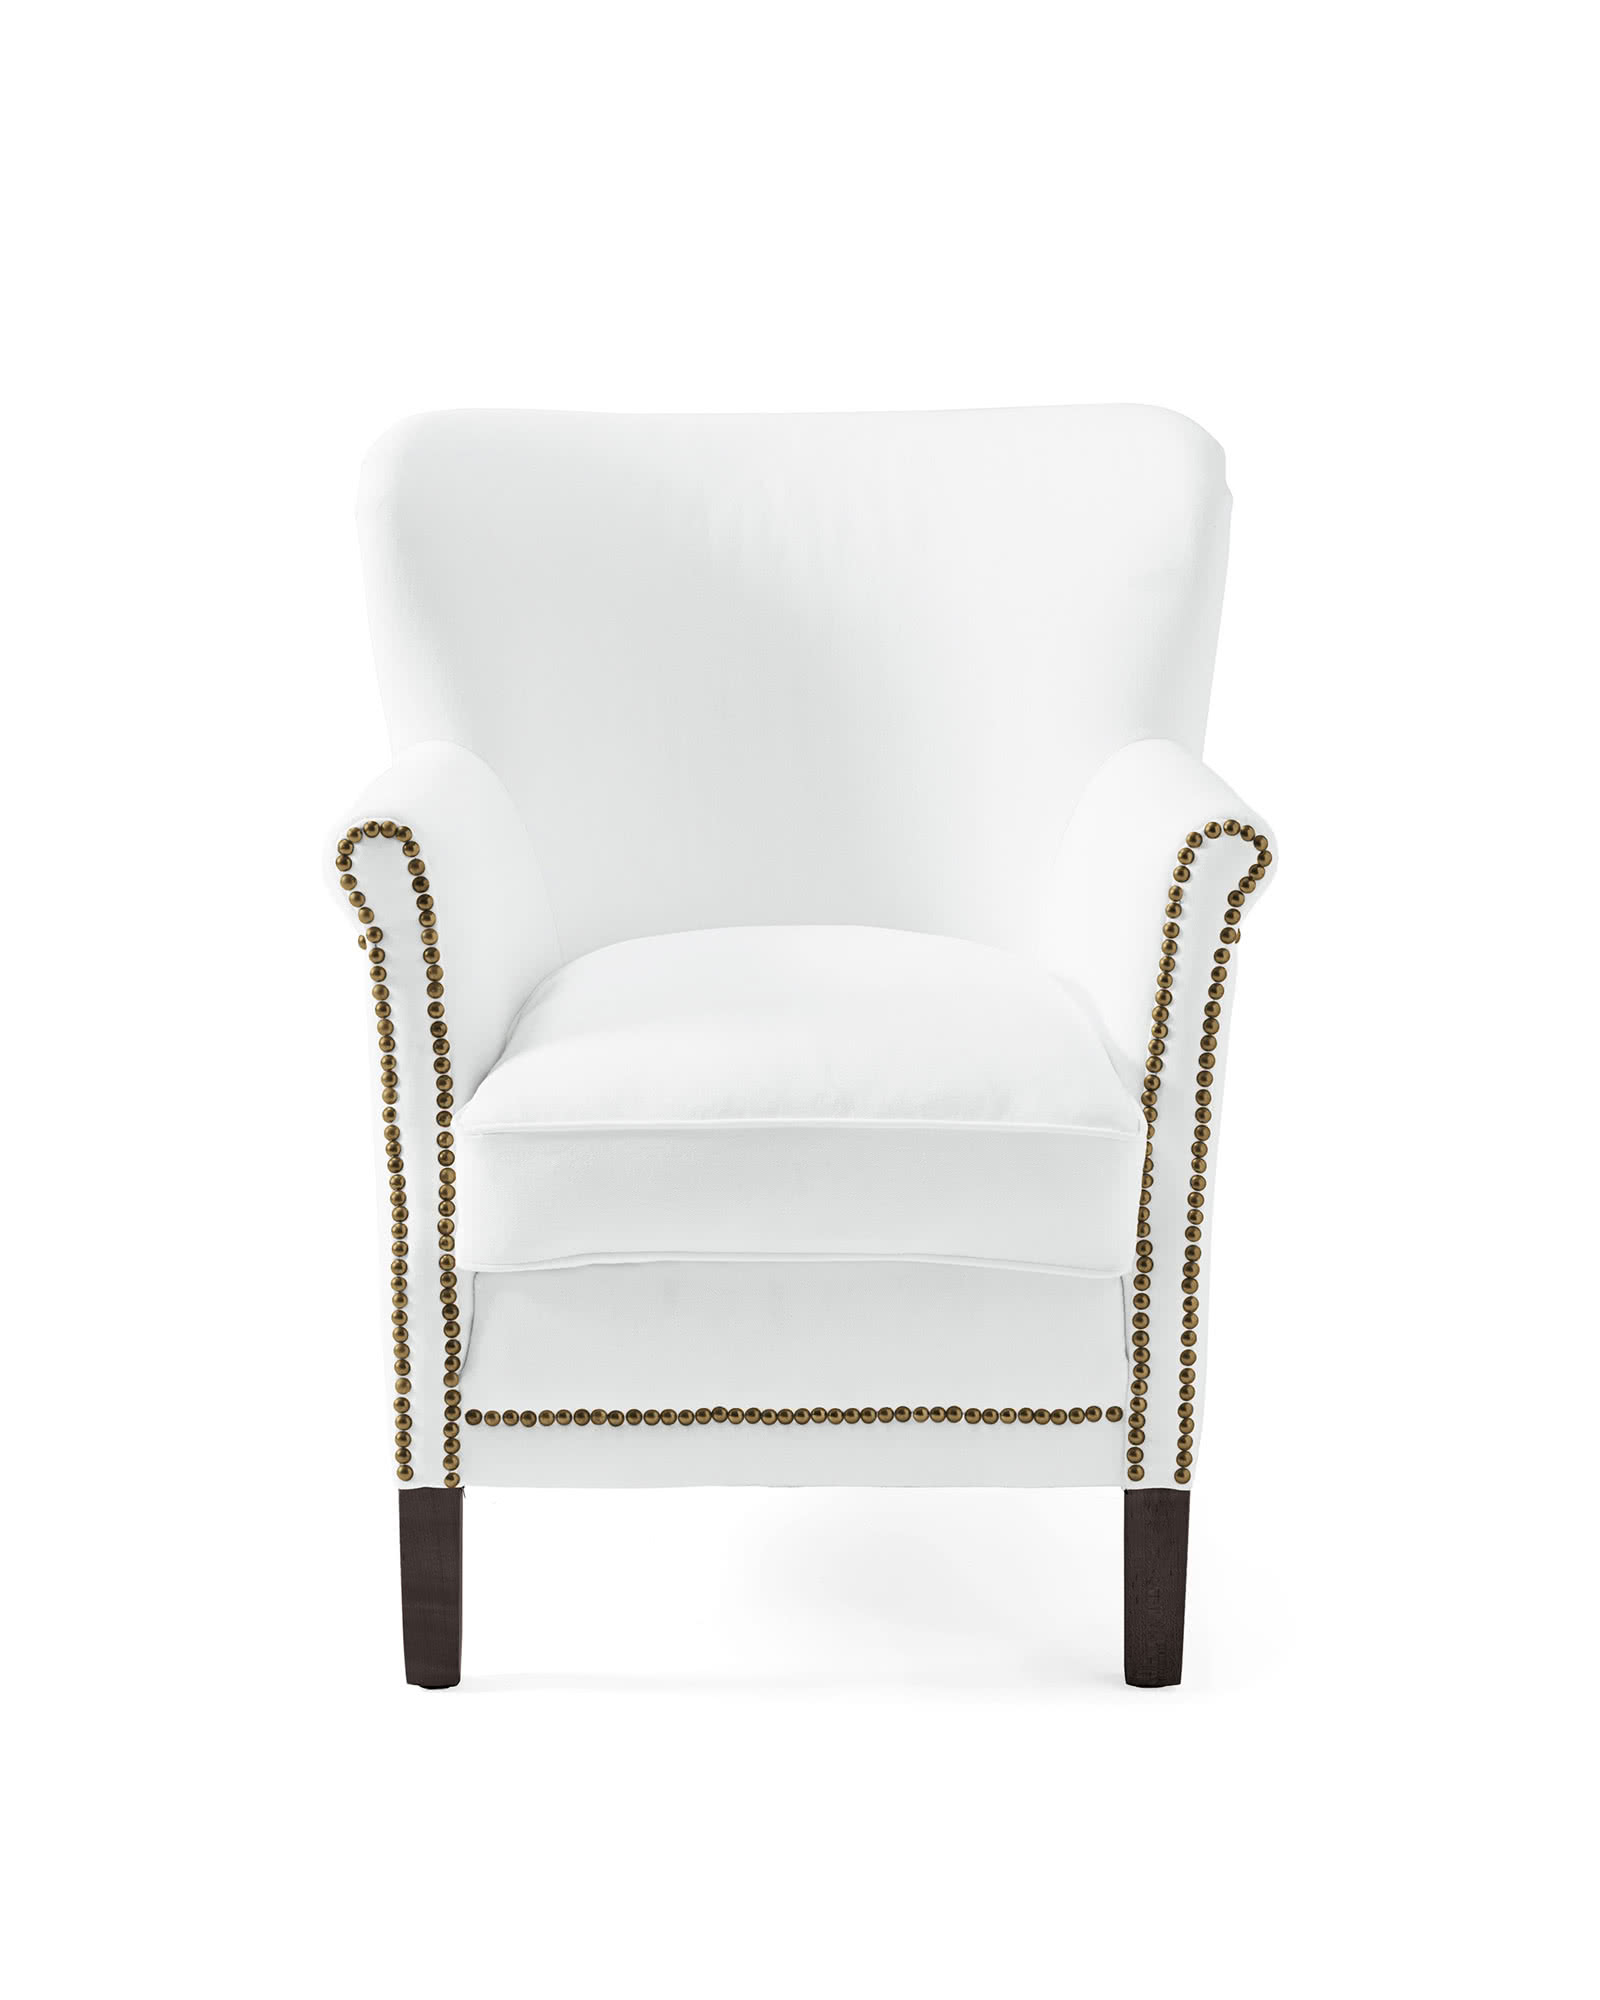 Belgian Club Chair with Nailheads,